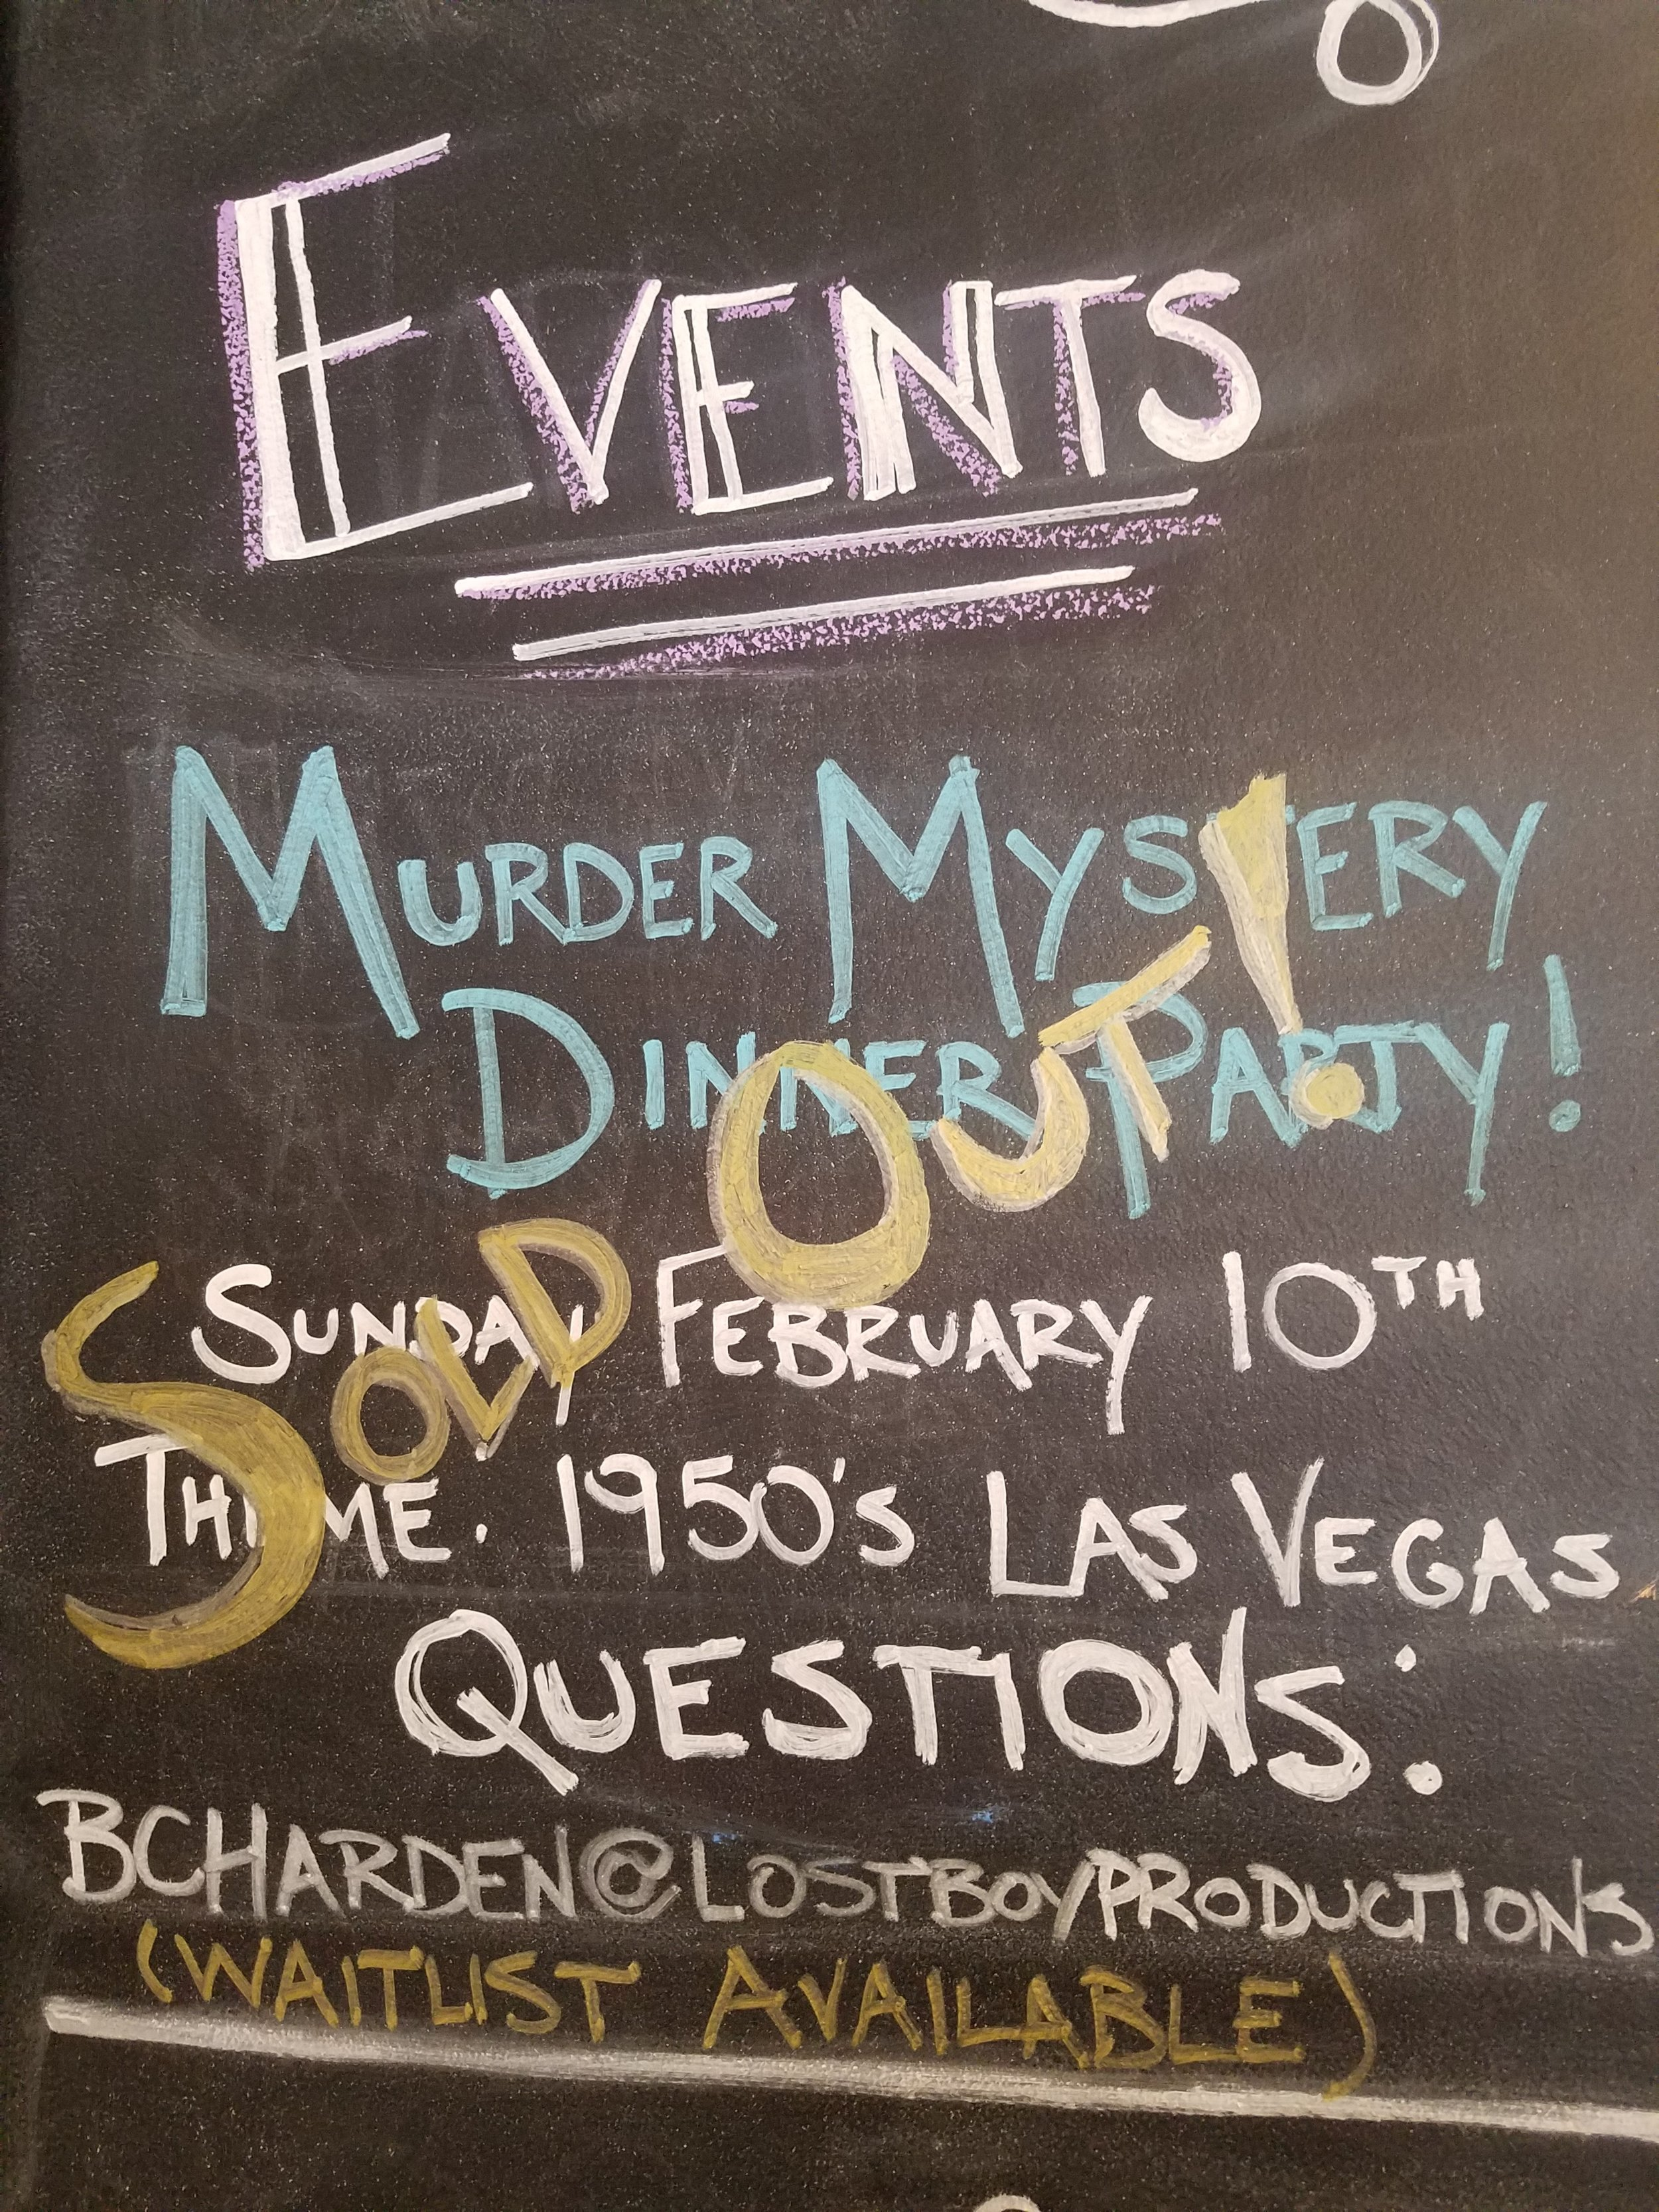 Murder Mystery Dinner Party Sunday, February 10th….Theme: 1950s Las Vegas…..For more info or to sign up email BCHARDEN@LOSTBOYPRODUCTIONS.COM